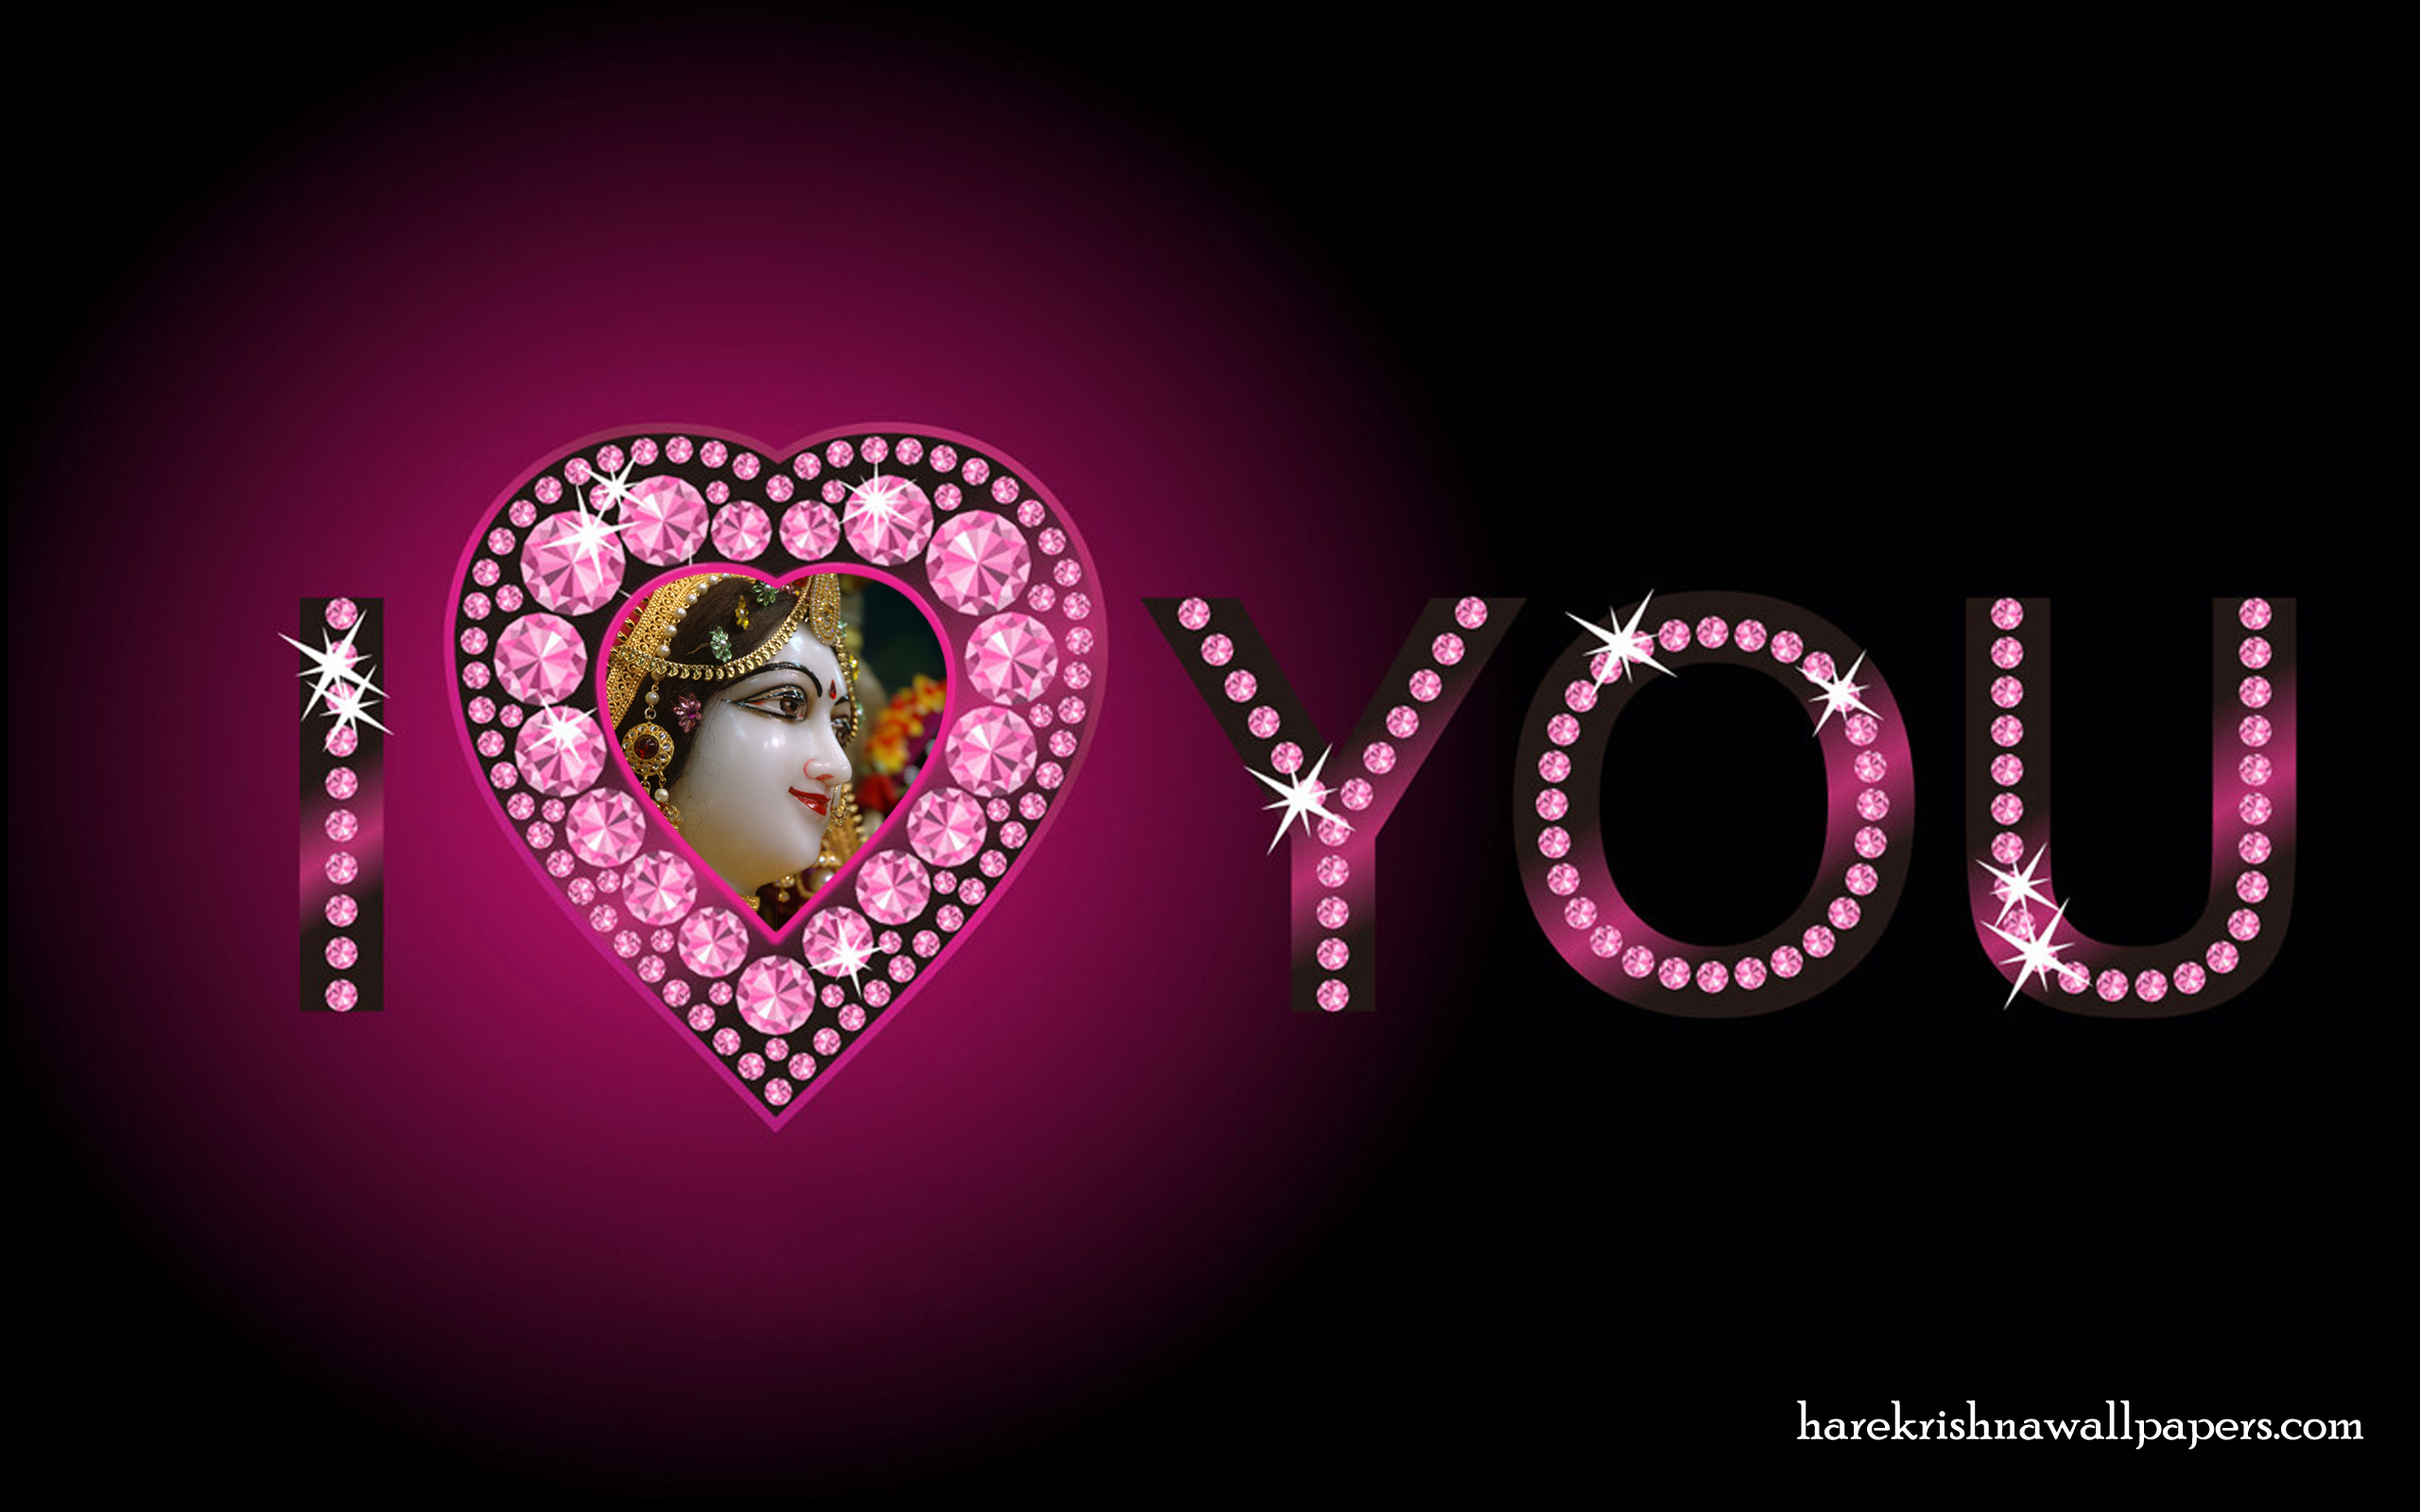 I Love You Radharani Wallpaper (011) Size 2560x1600 Download